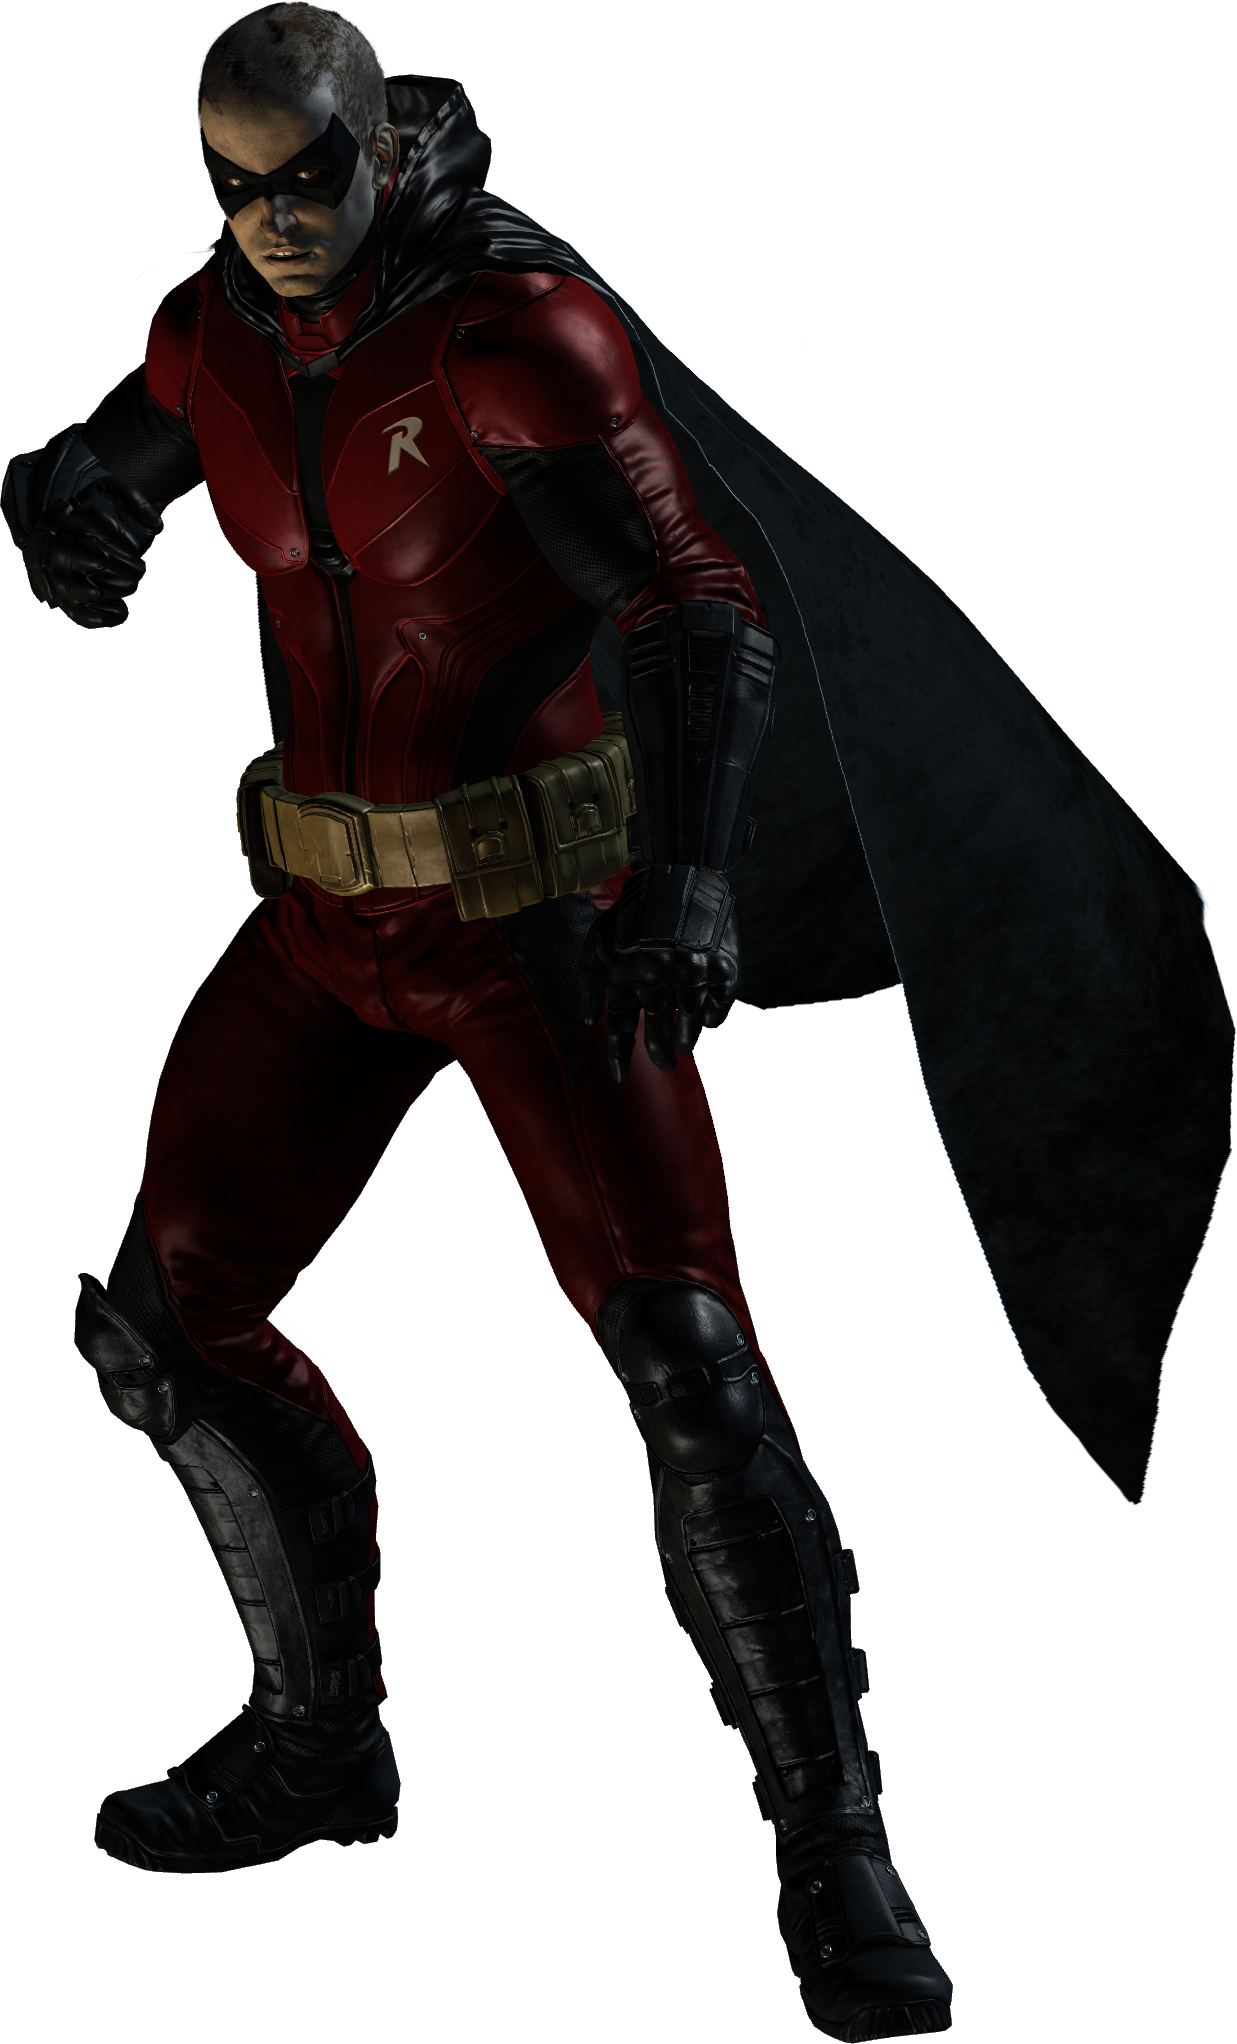 Batman forever robin suit png. Image jason todd red